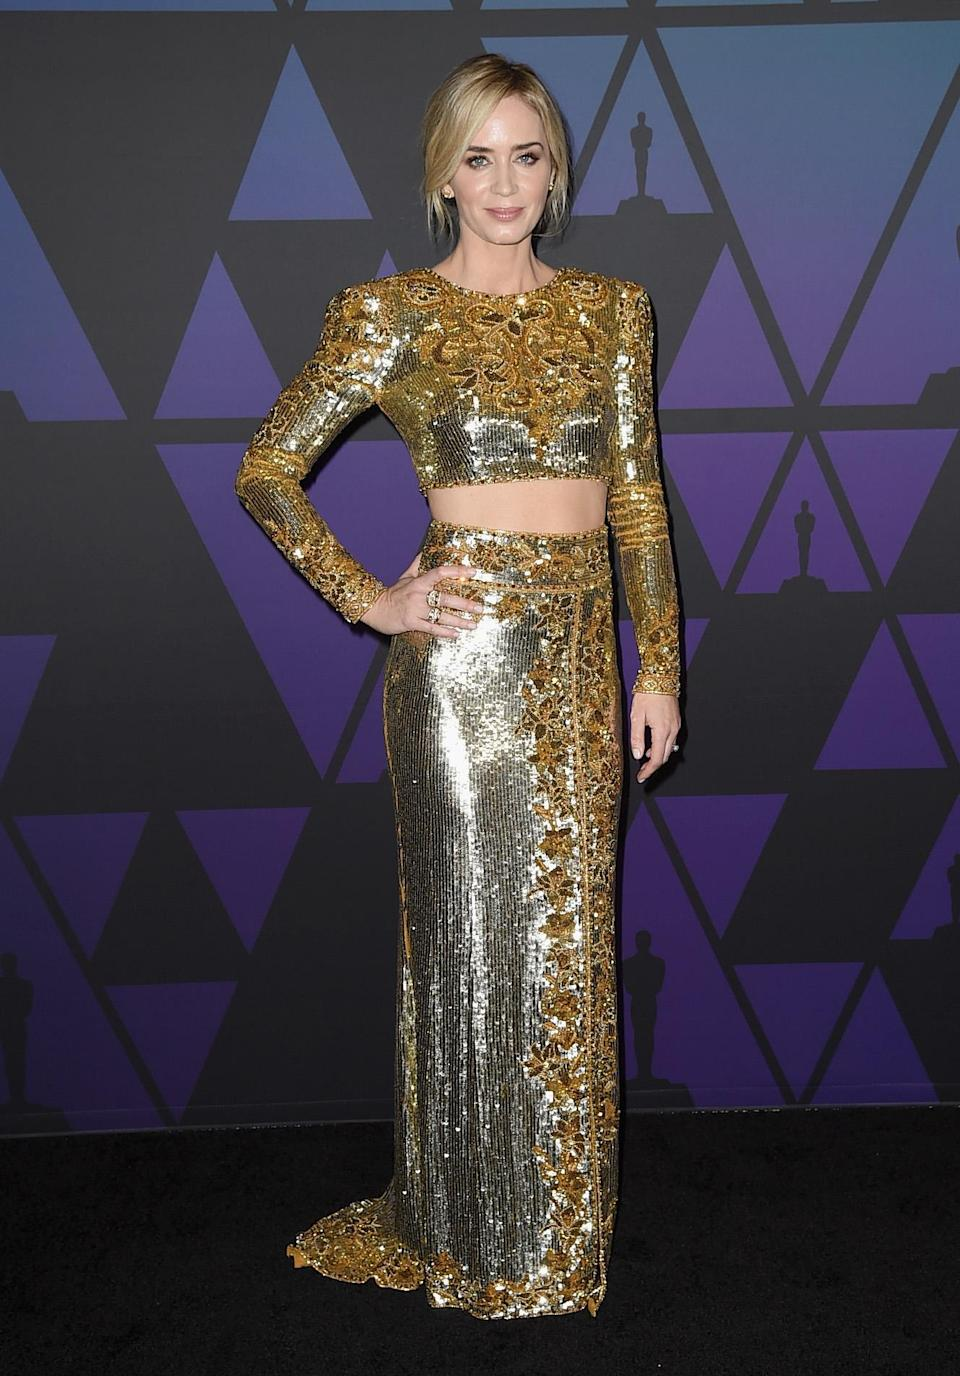 <p>Emily Blunt wore a custom DUNDAS by Peter Dundas gold embroidered top and skirt ensemble to attend the Academy of Motion Picture Arts and Sciences' 10th annual Governors Awards at The Ray Dolby Ballroom at Hollywood & Highland Center on November 18, 2018 in Hollywood, California. <em>[Photo: Getty]</em> </p>